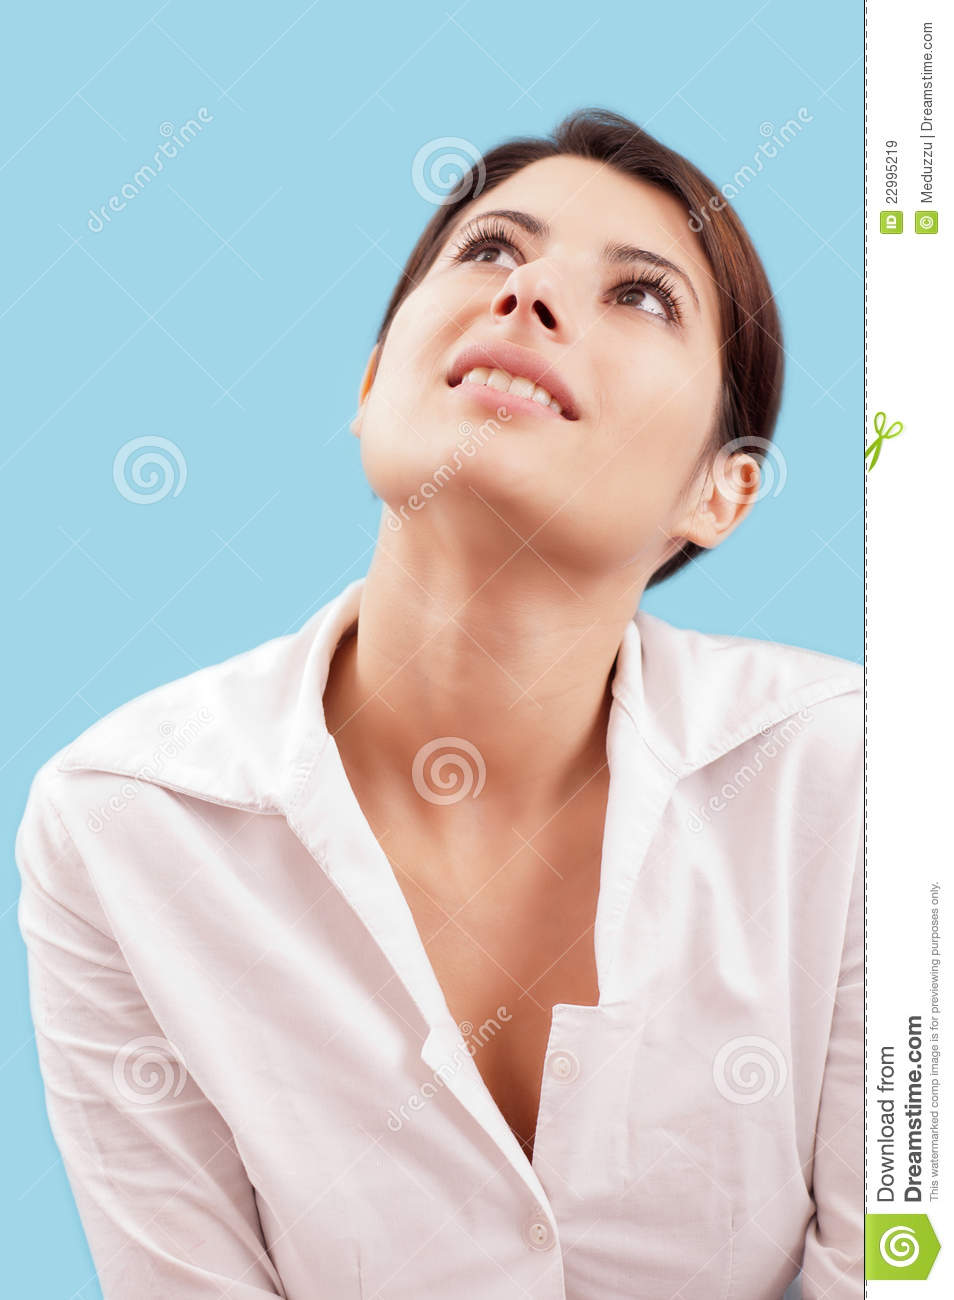 Smiling Woman Looking Up Royalty Free Stock Images - Image: 22995219